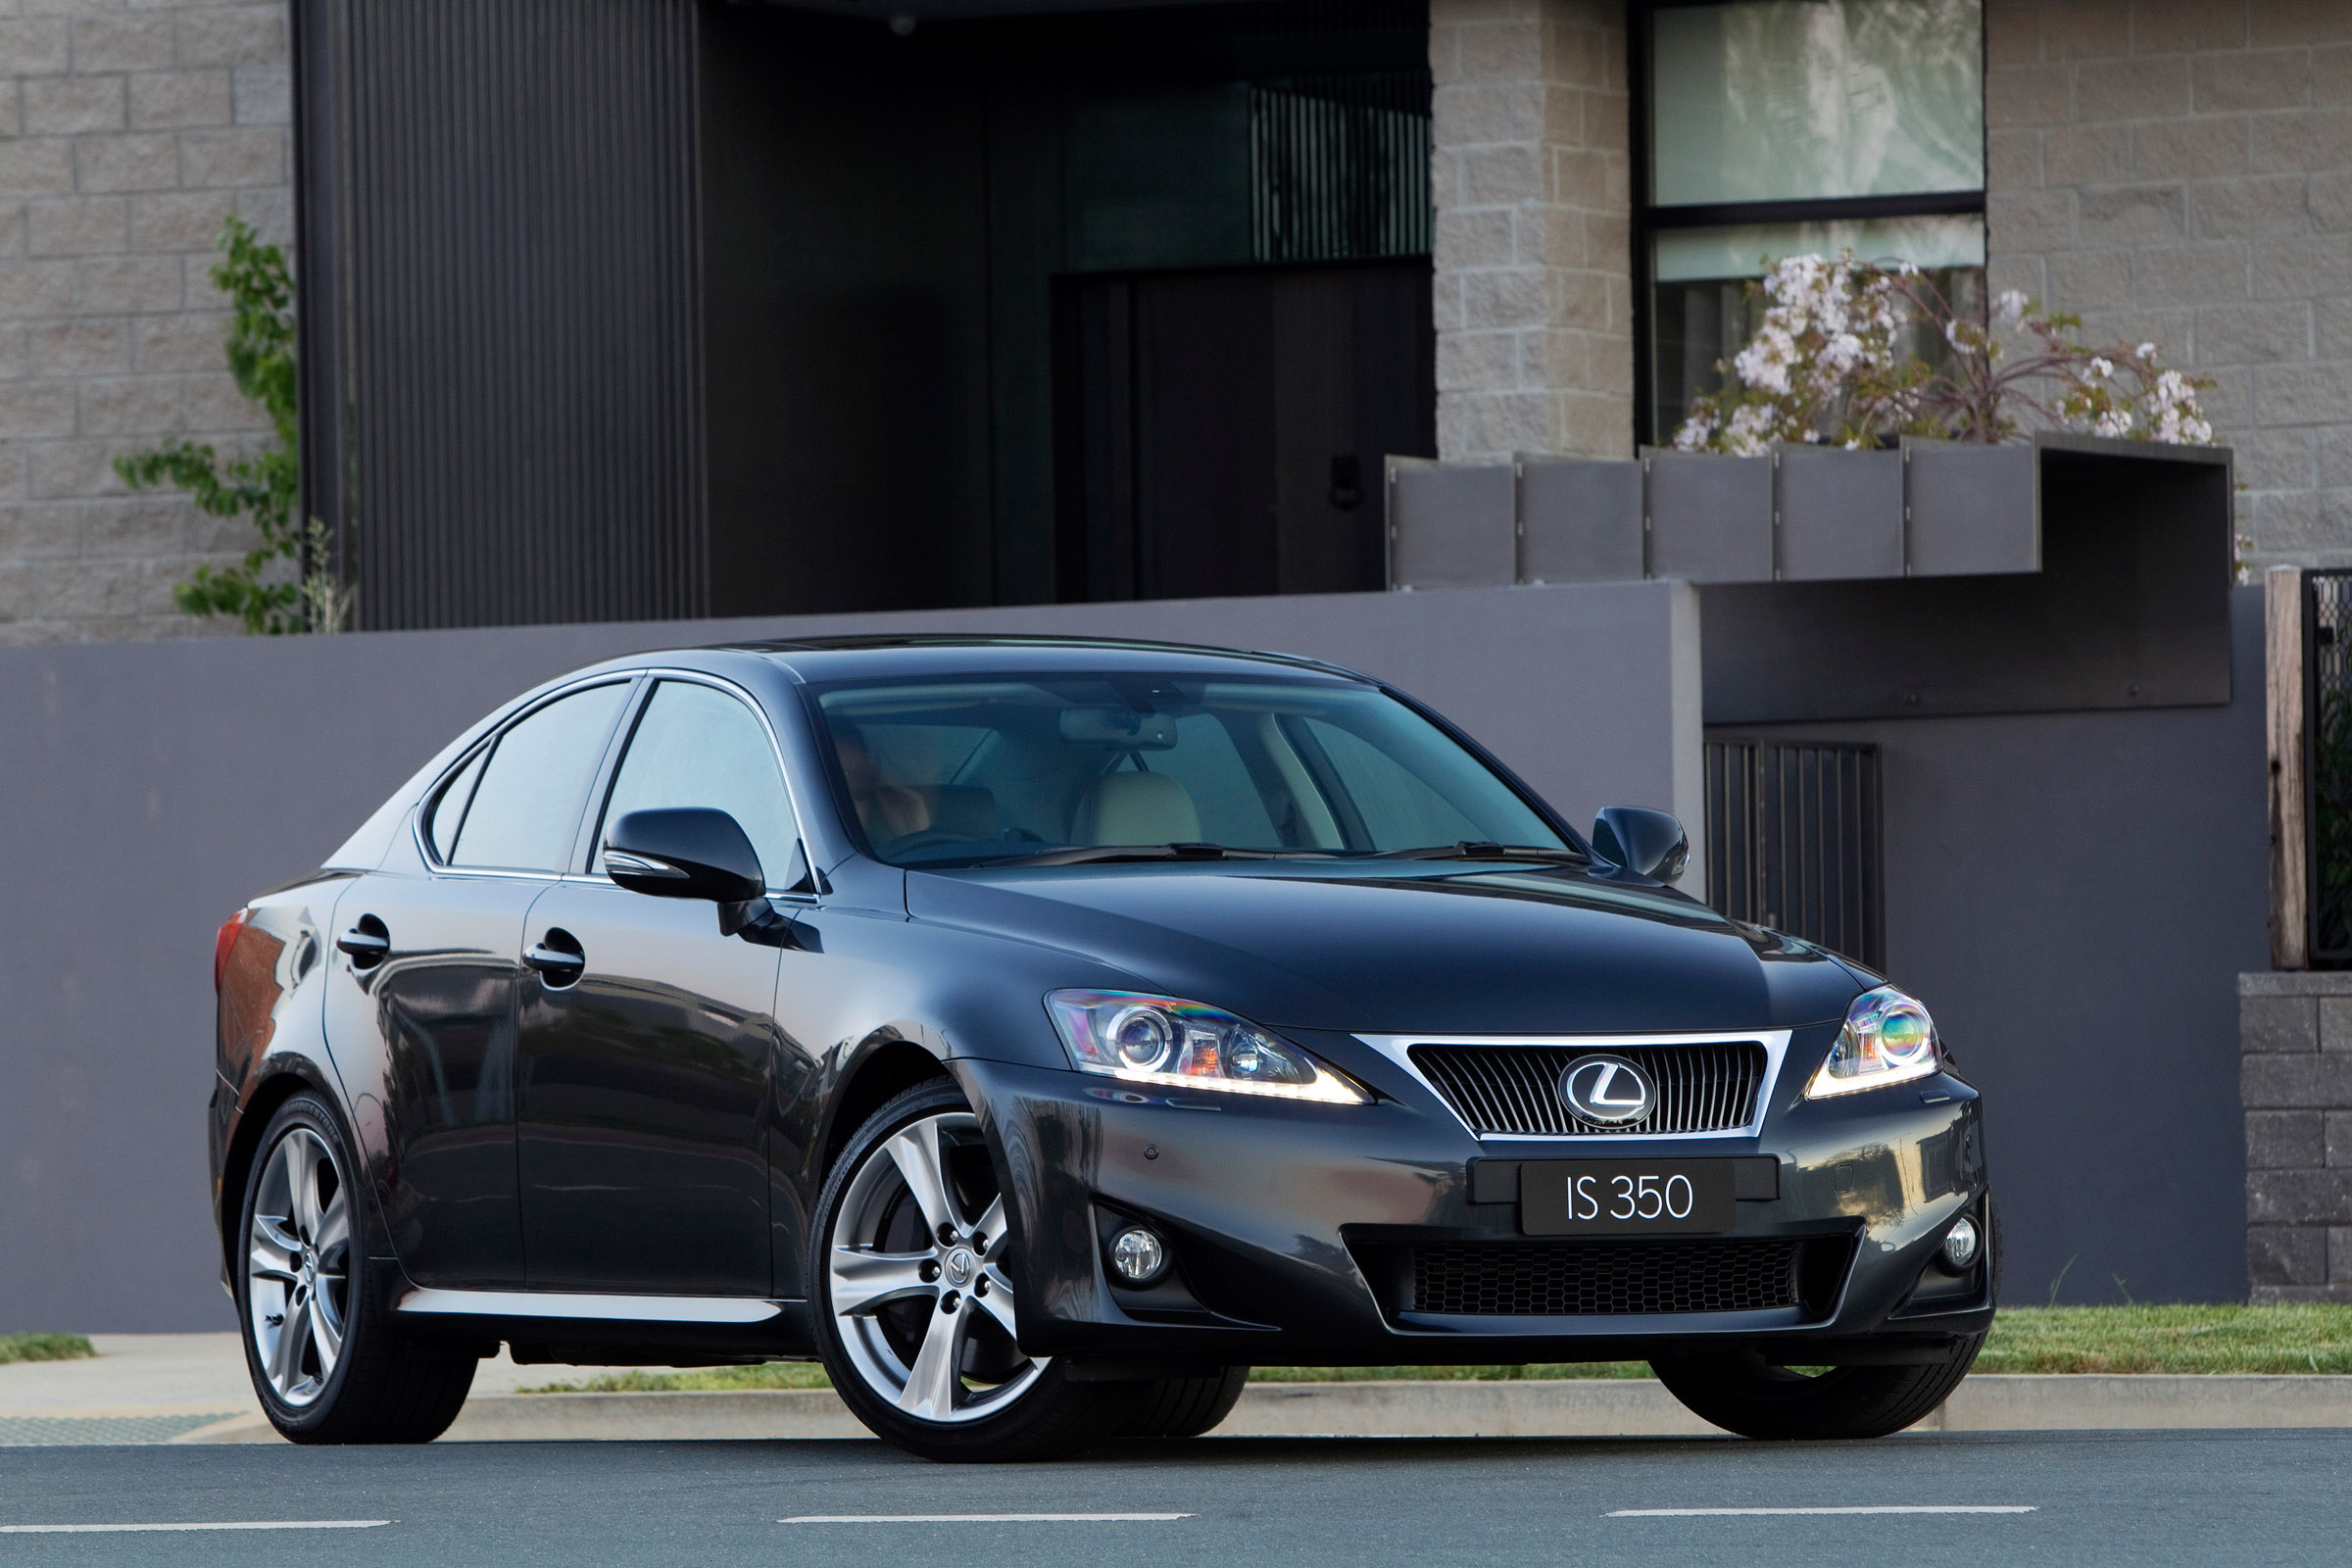 https://www.automobilesreview.com/gallery/2011-lexus-is-350-sports-luxury/2011-lexus-is-350-sports-luxury-02.jpg